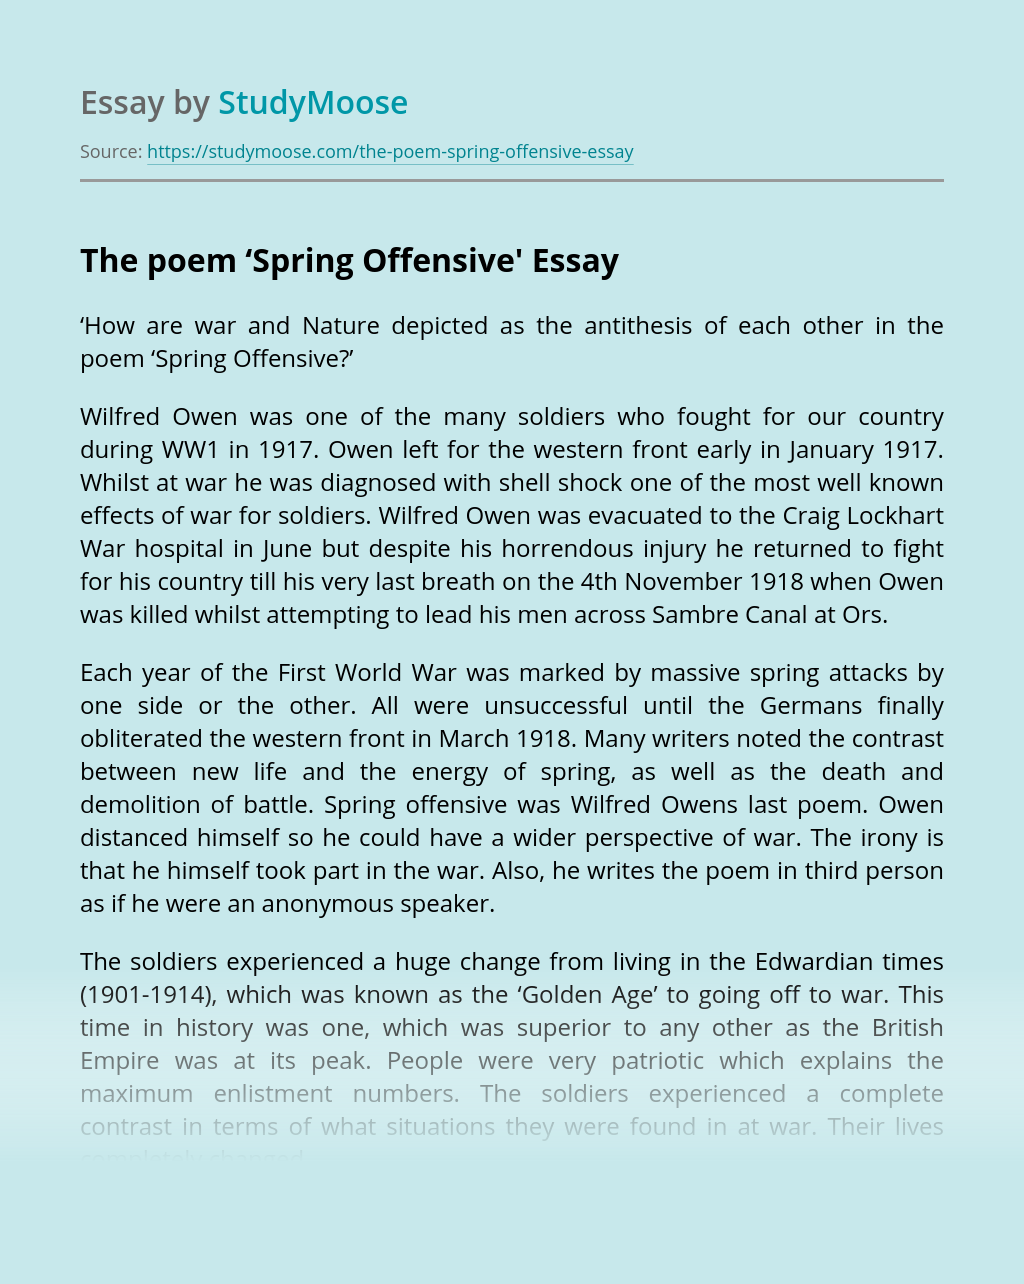 The Poem 'Spring Offensive'